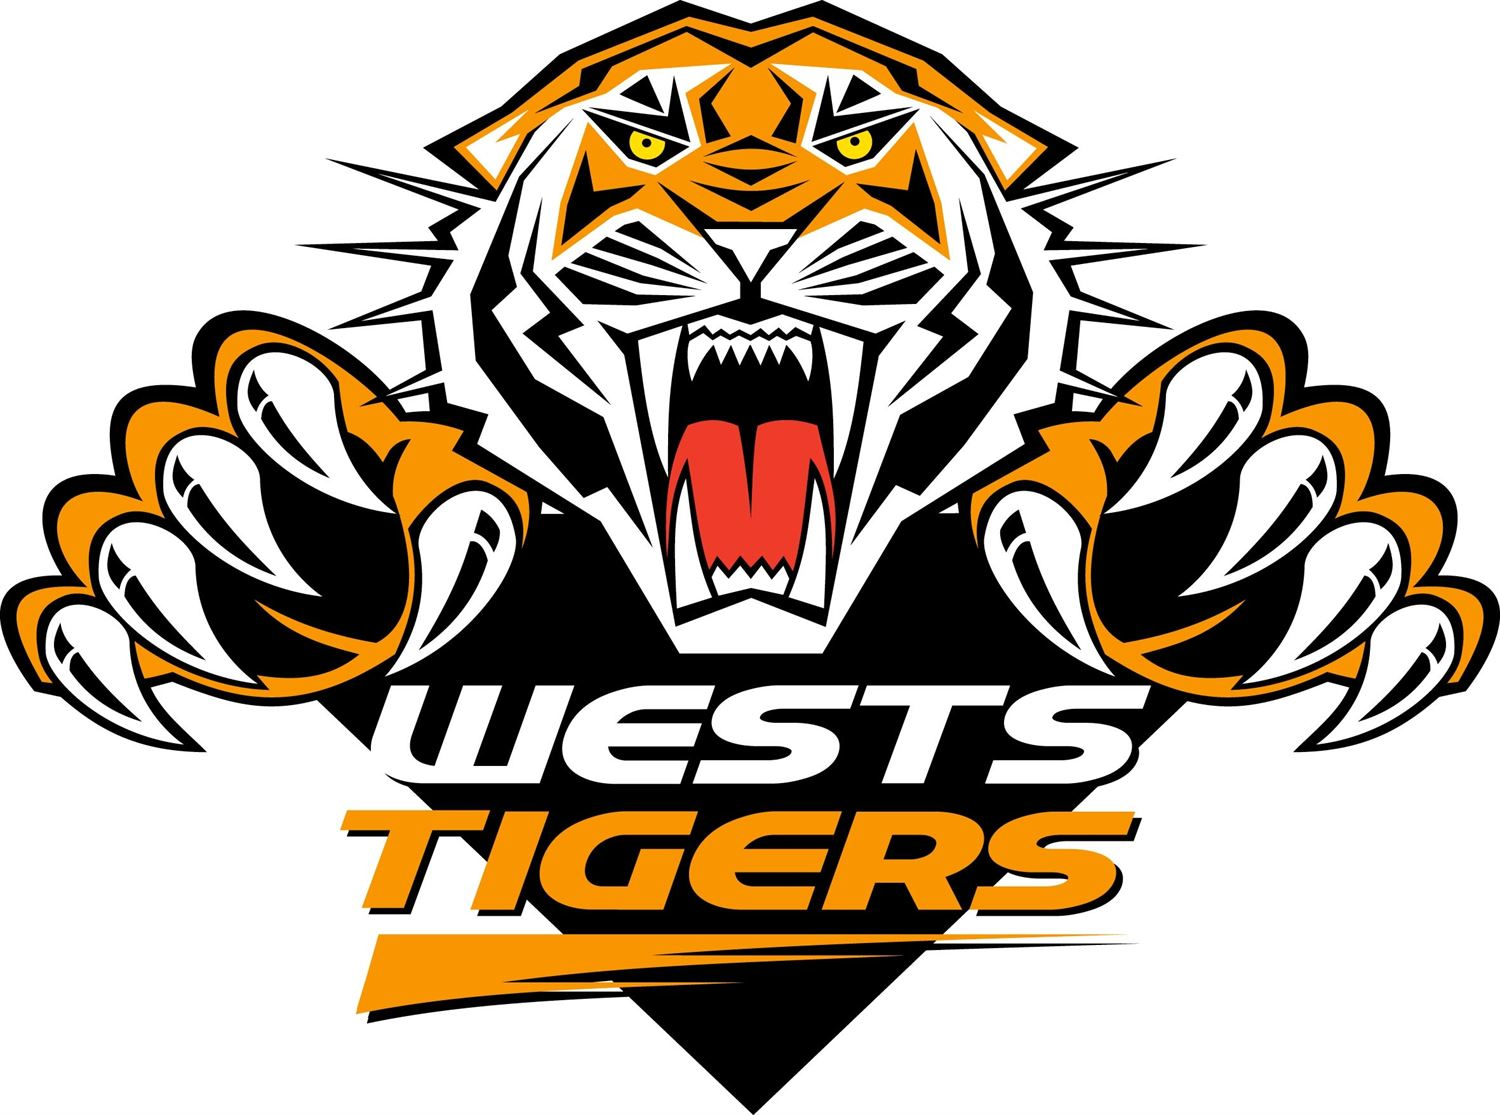 Wests Tigers - TGC - Wests Tigers